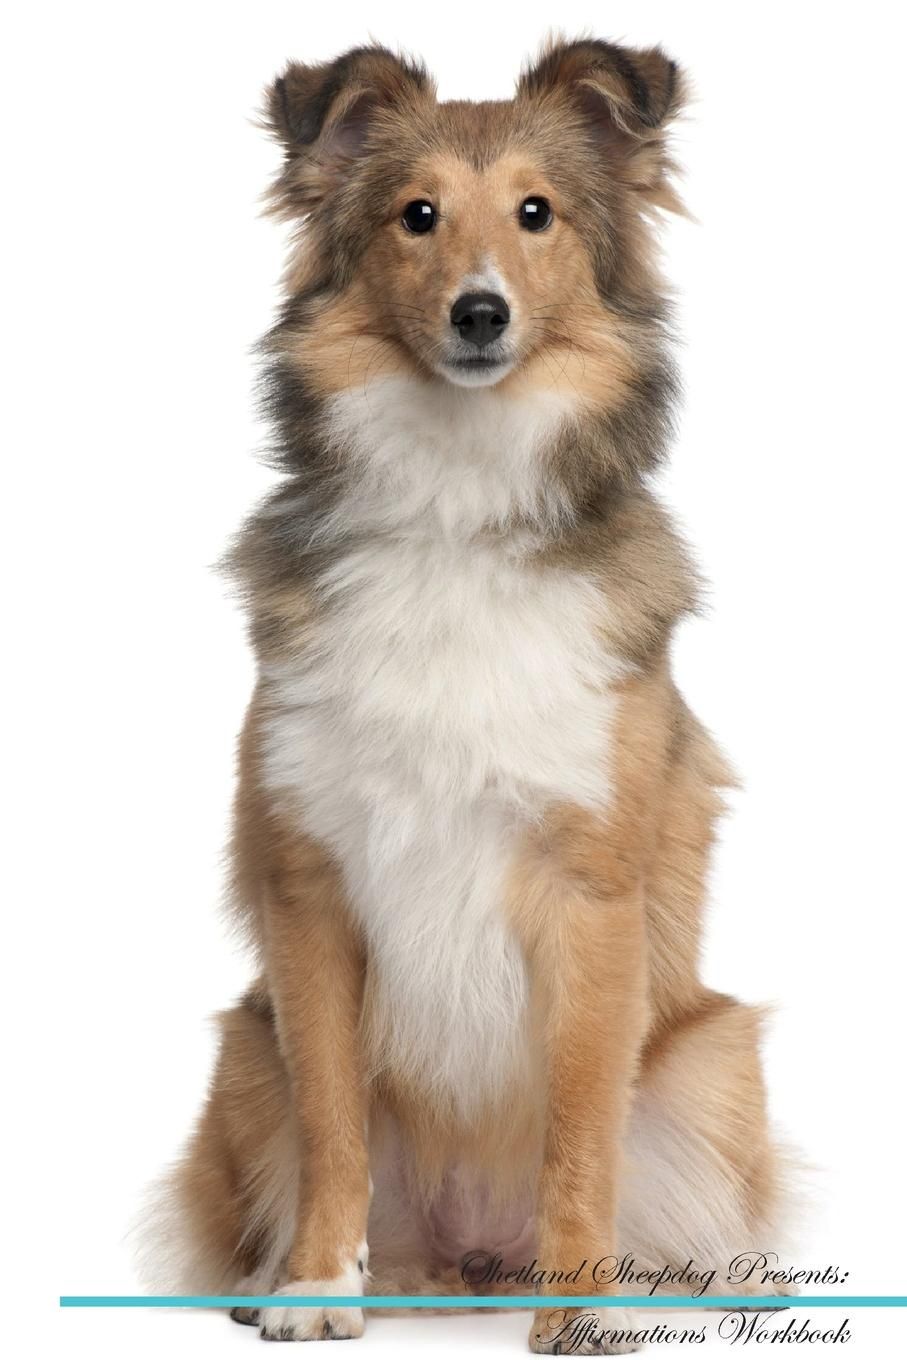 Shetland Sheepdog Affirmations Workbook Shetland Sheepdog Presents. Positive and Loving Affirmations Workbook. Includes: Mentoring Questions, Guidance, Supporting You.